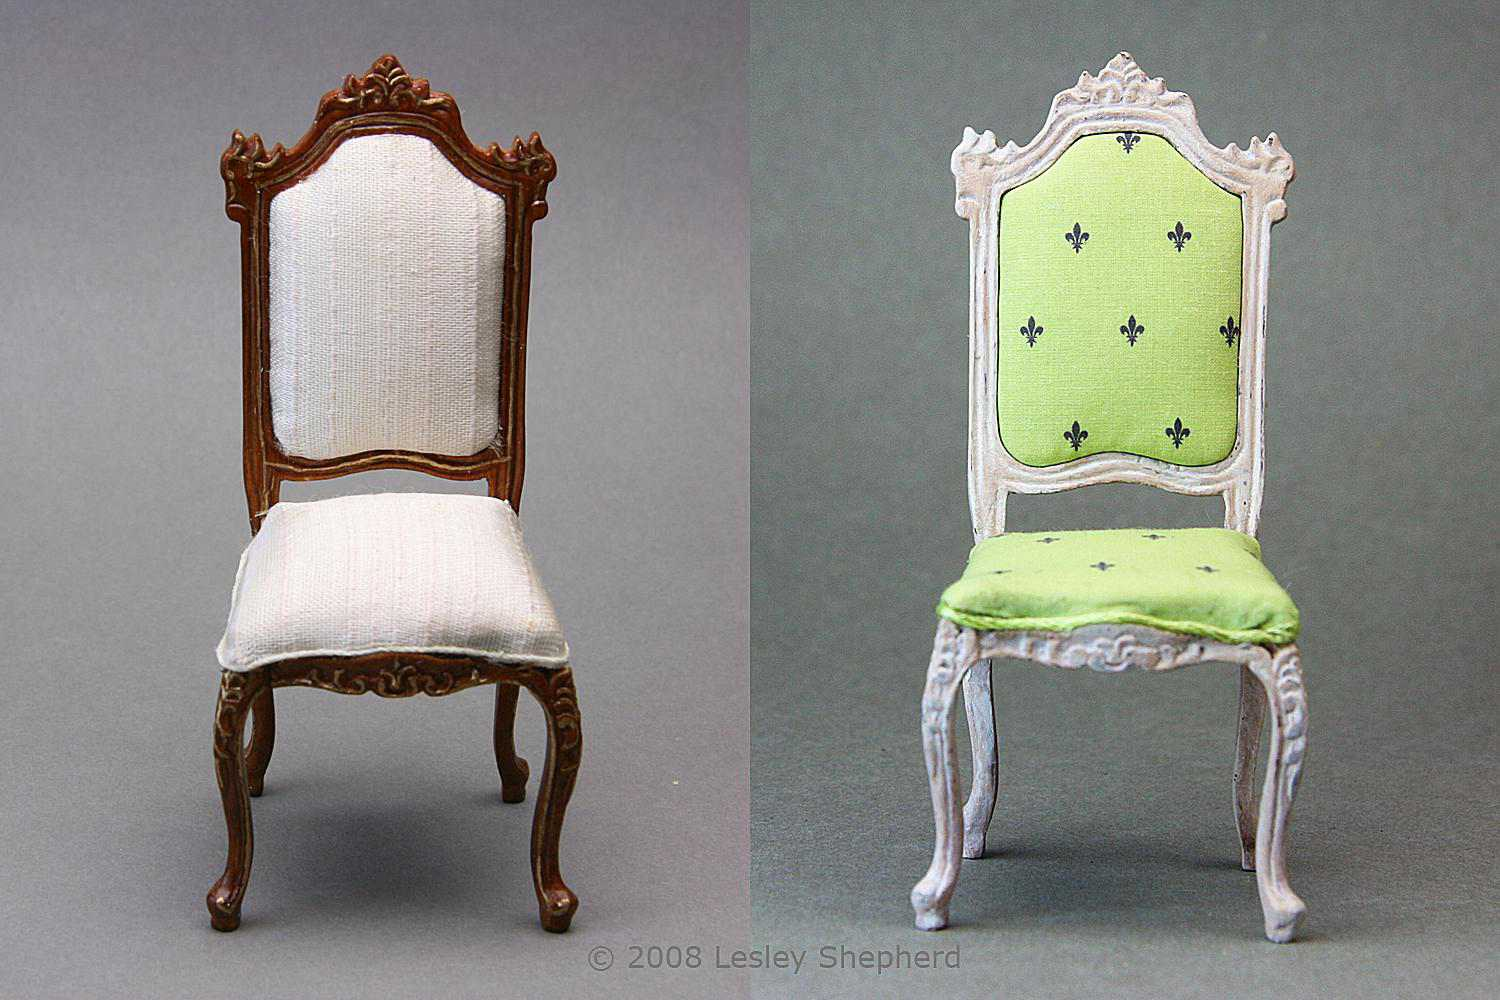 A dark wood finish chair with plain upholstery compared to the same chair in an antique finish.